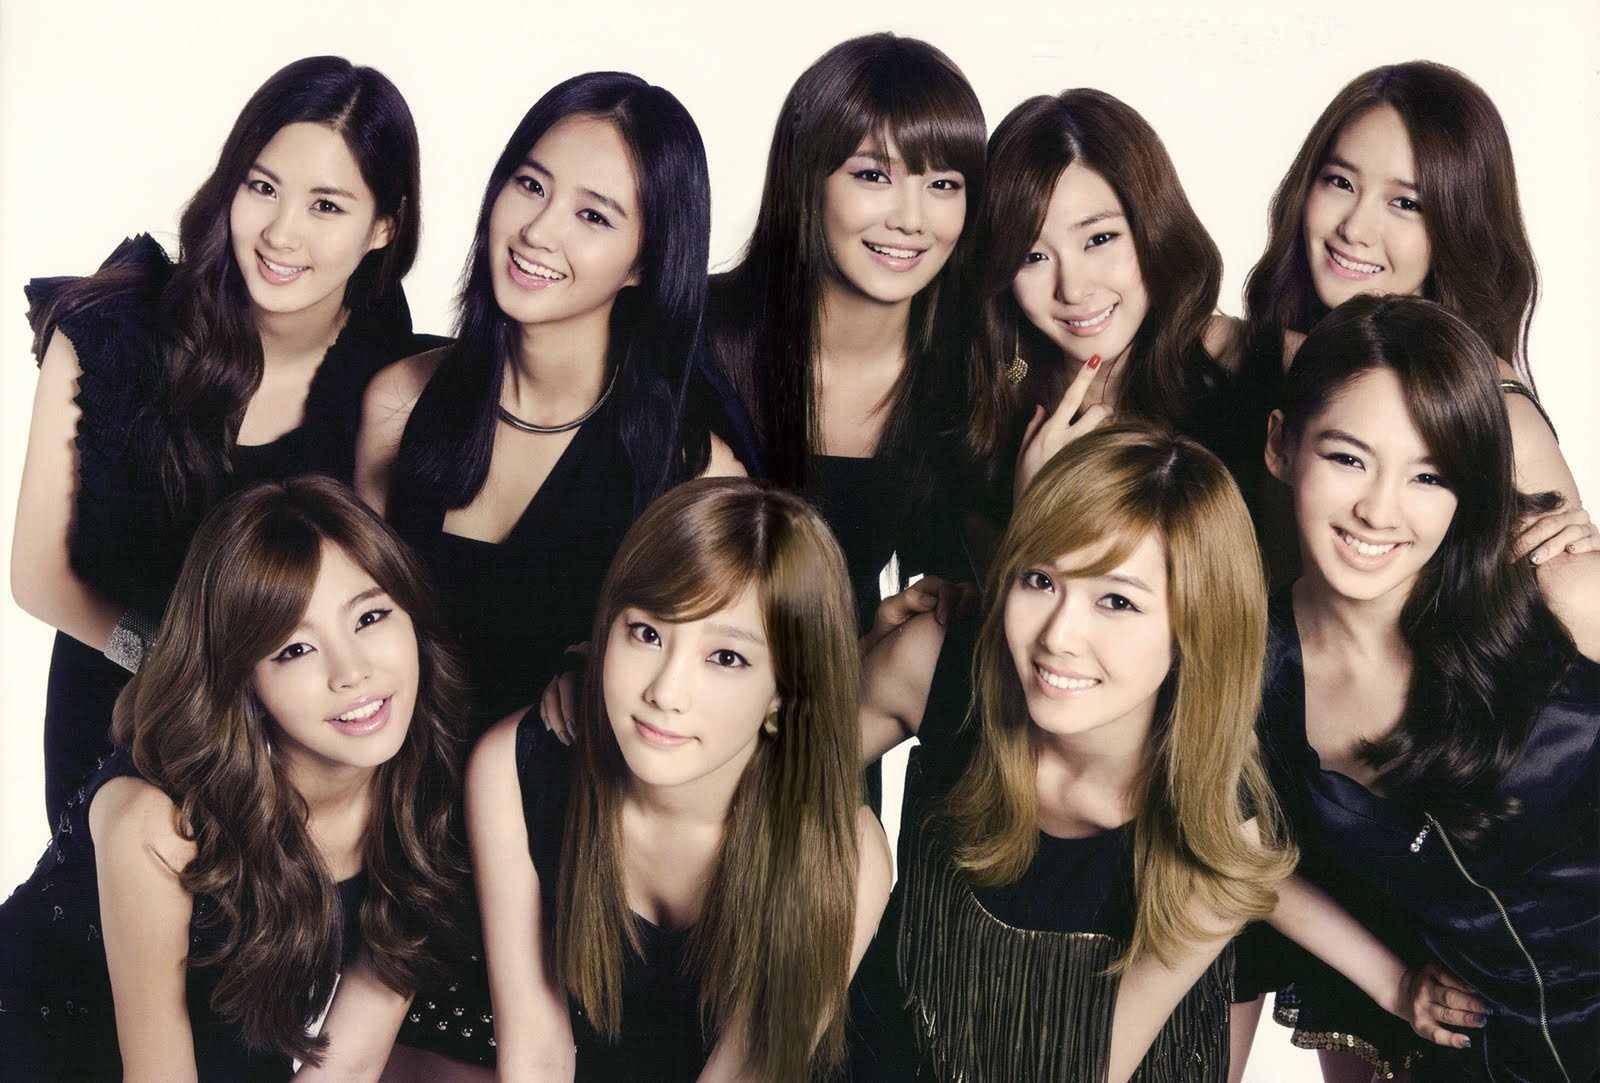 Girls' Generation Voted as the Group with the Most Family-Like